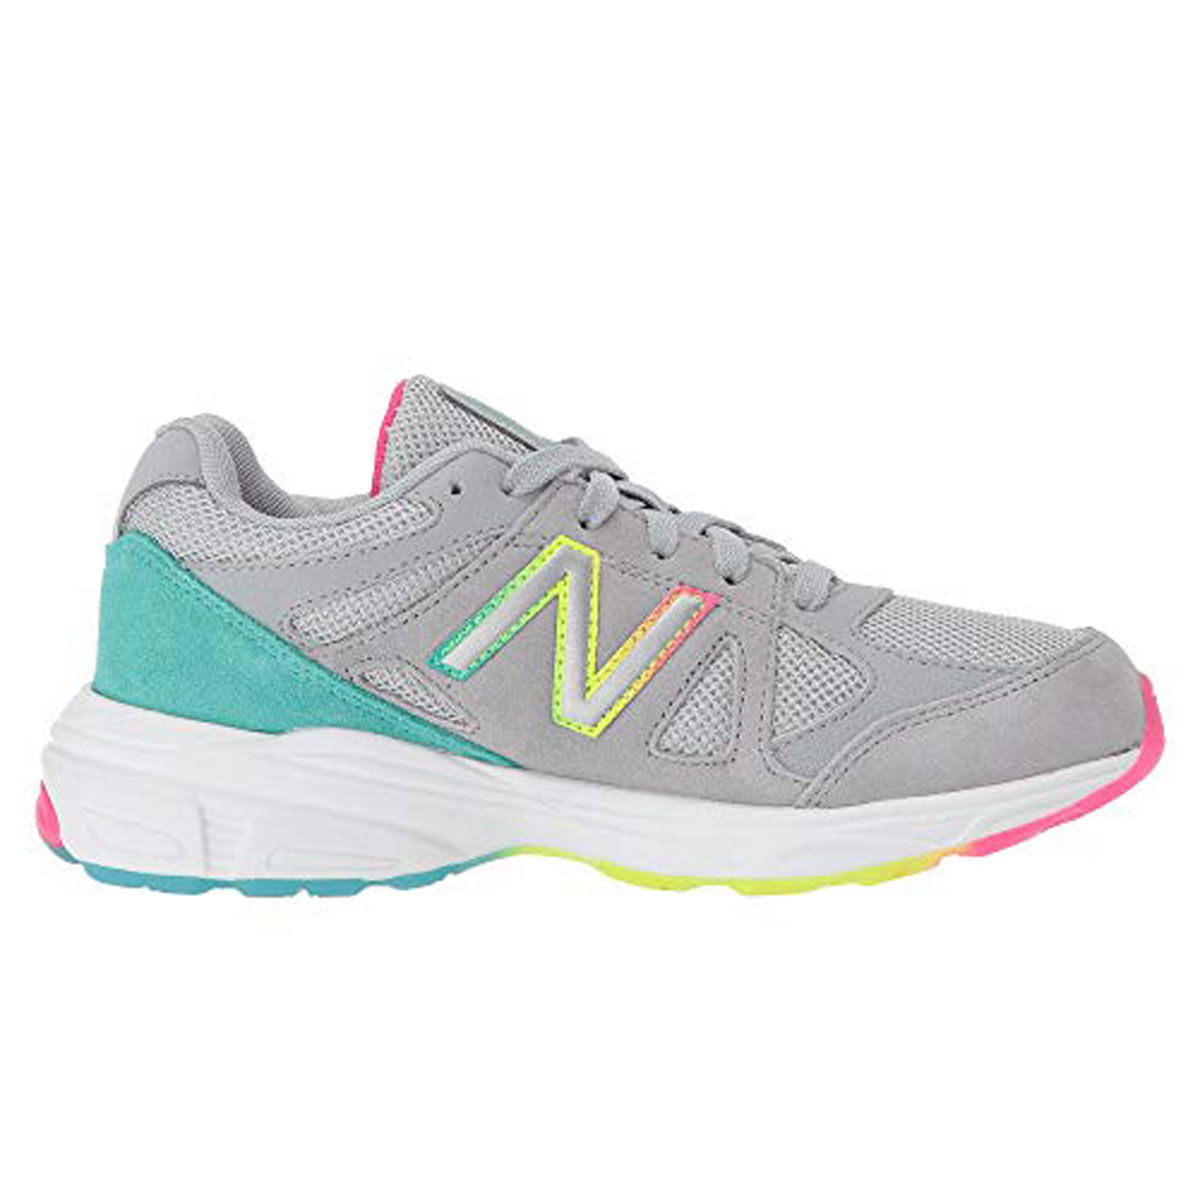 New Balance 888 Big Kid Girls Casual Shoe